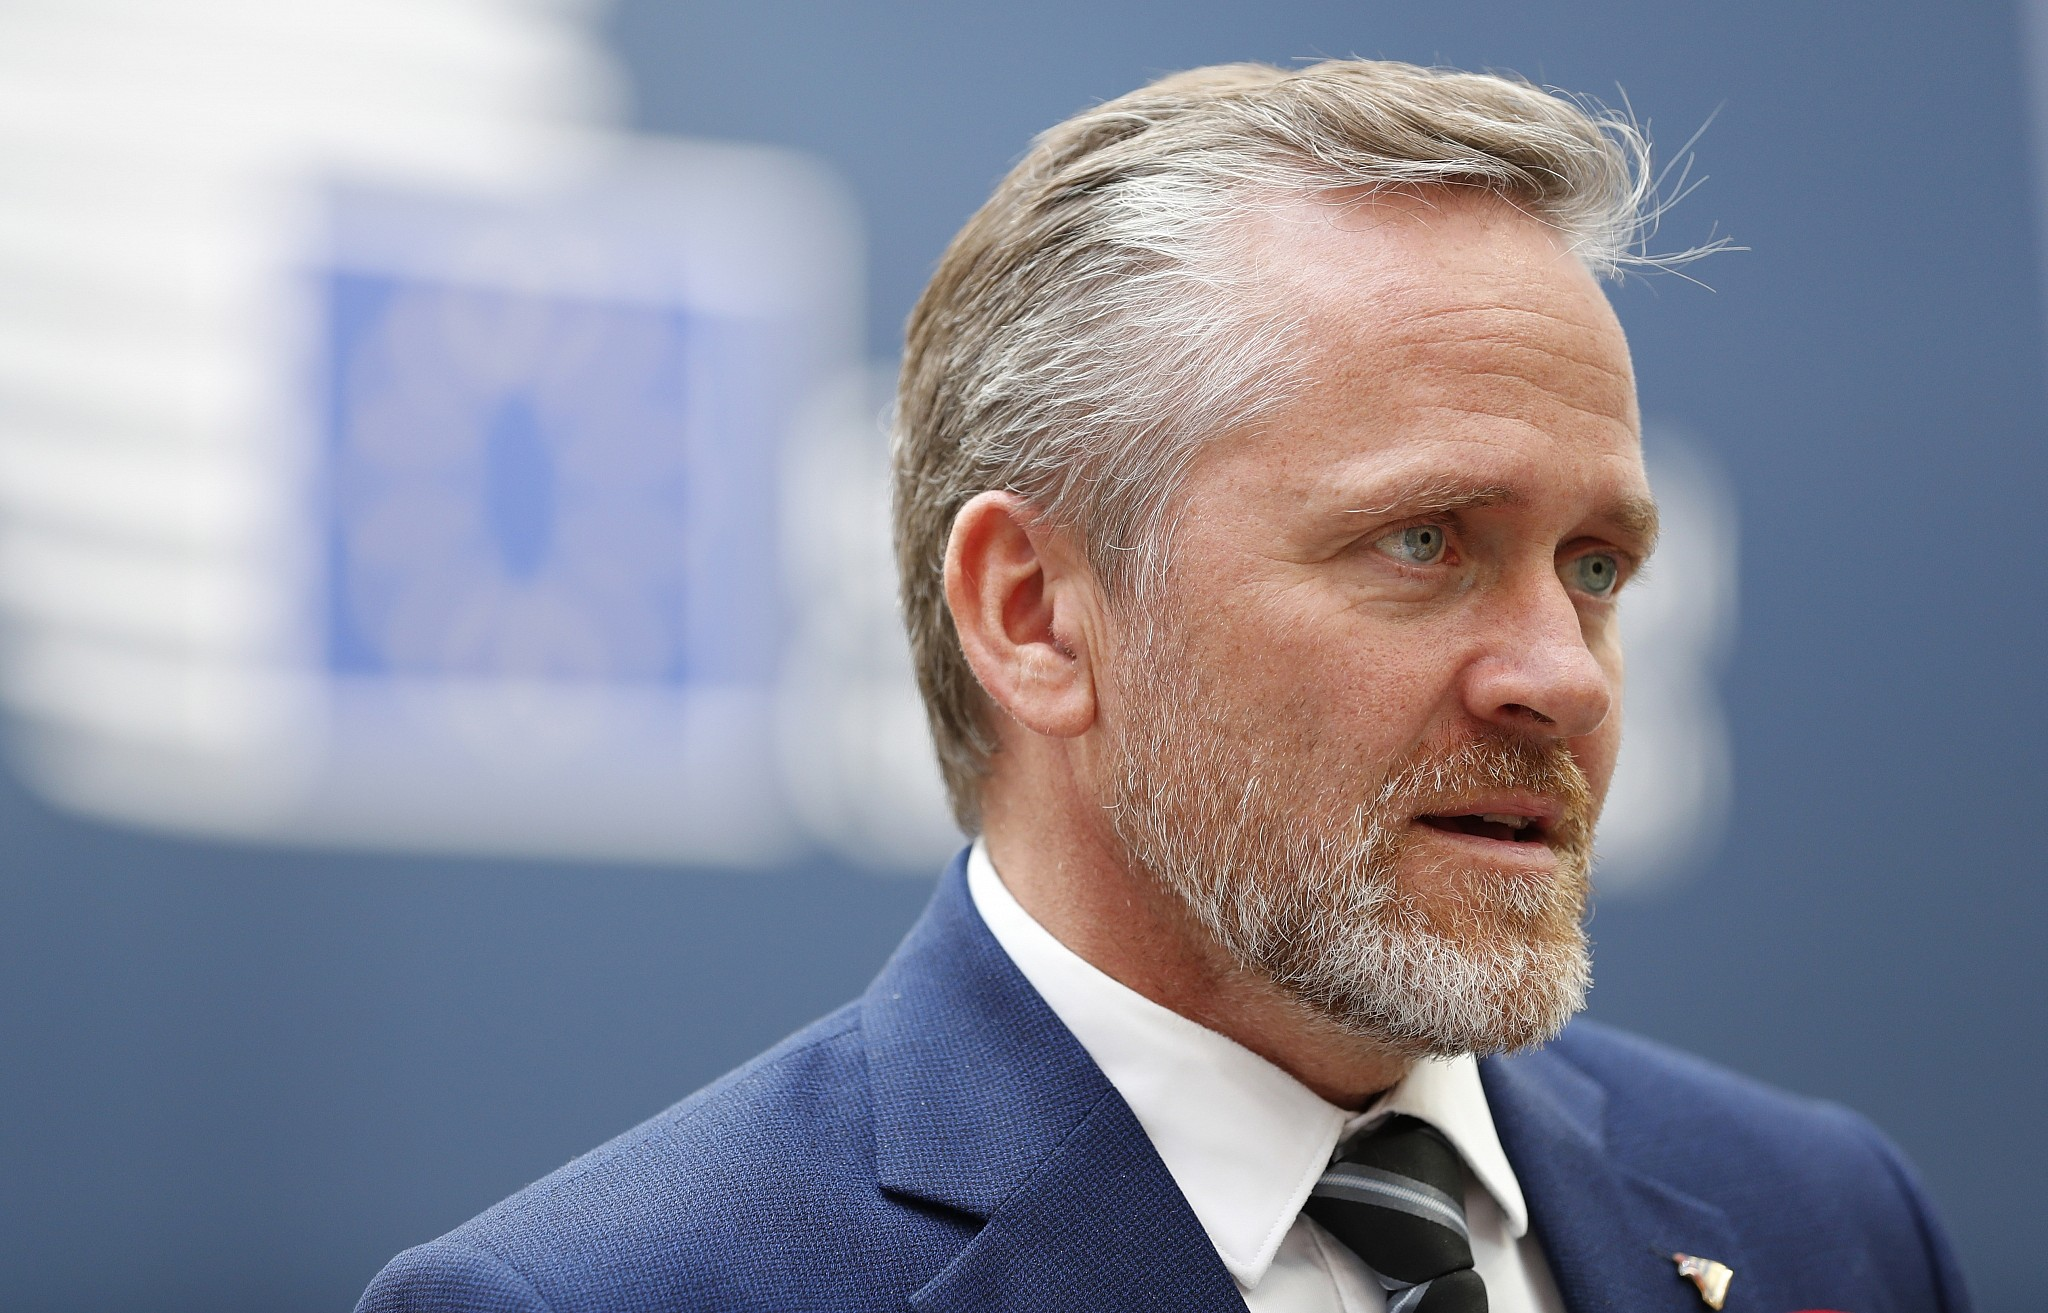 Denmark backs European Union  over Iran sanctions after murder plots